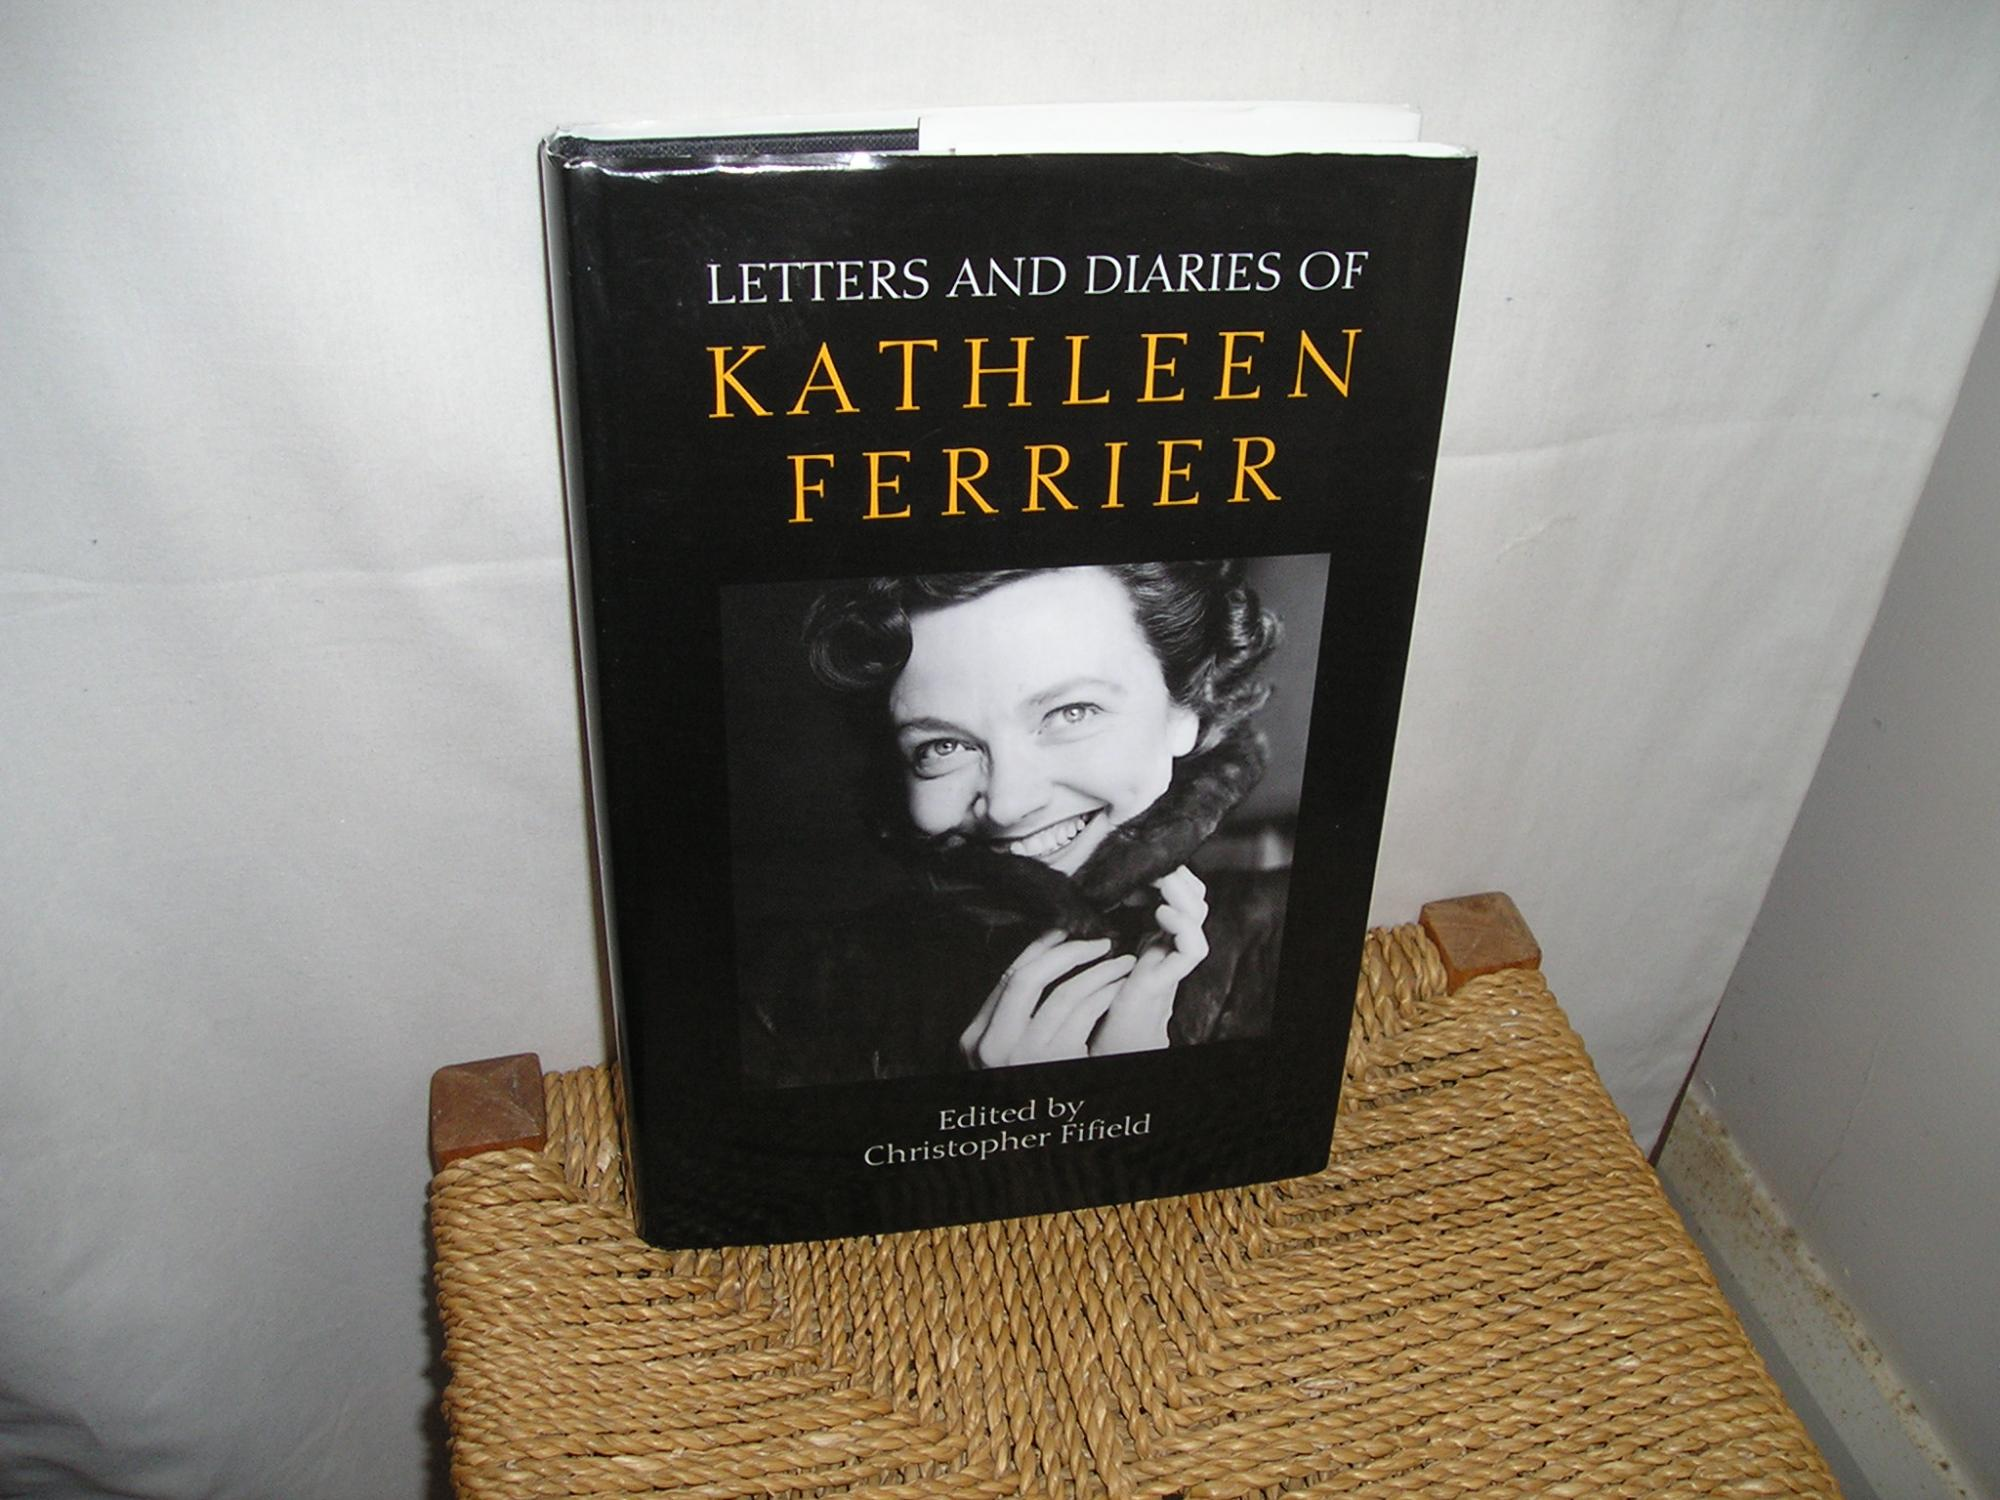 Letters And Diaries Of Kathleen Ferrier - Ferrier. Kathleen. Fifield. C. ed.